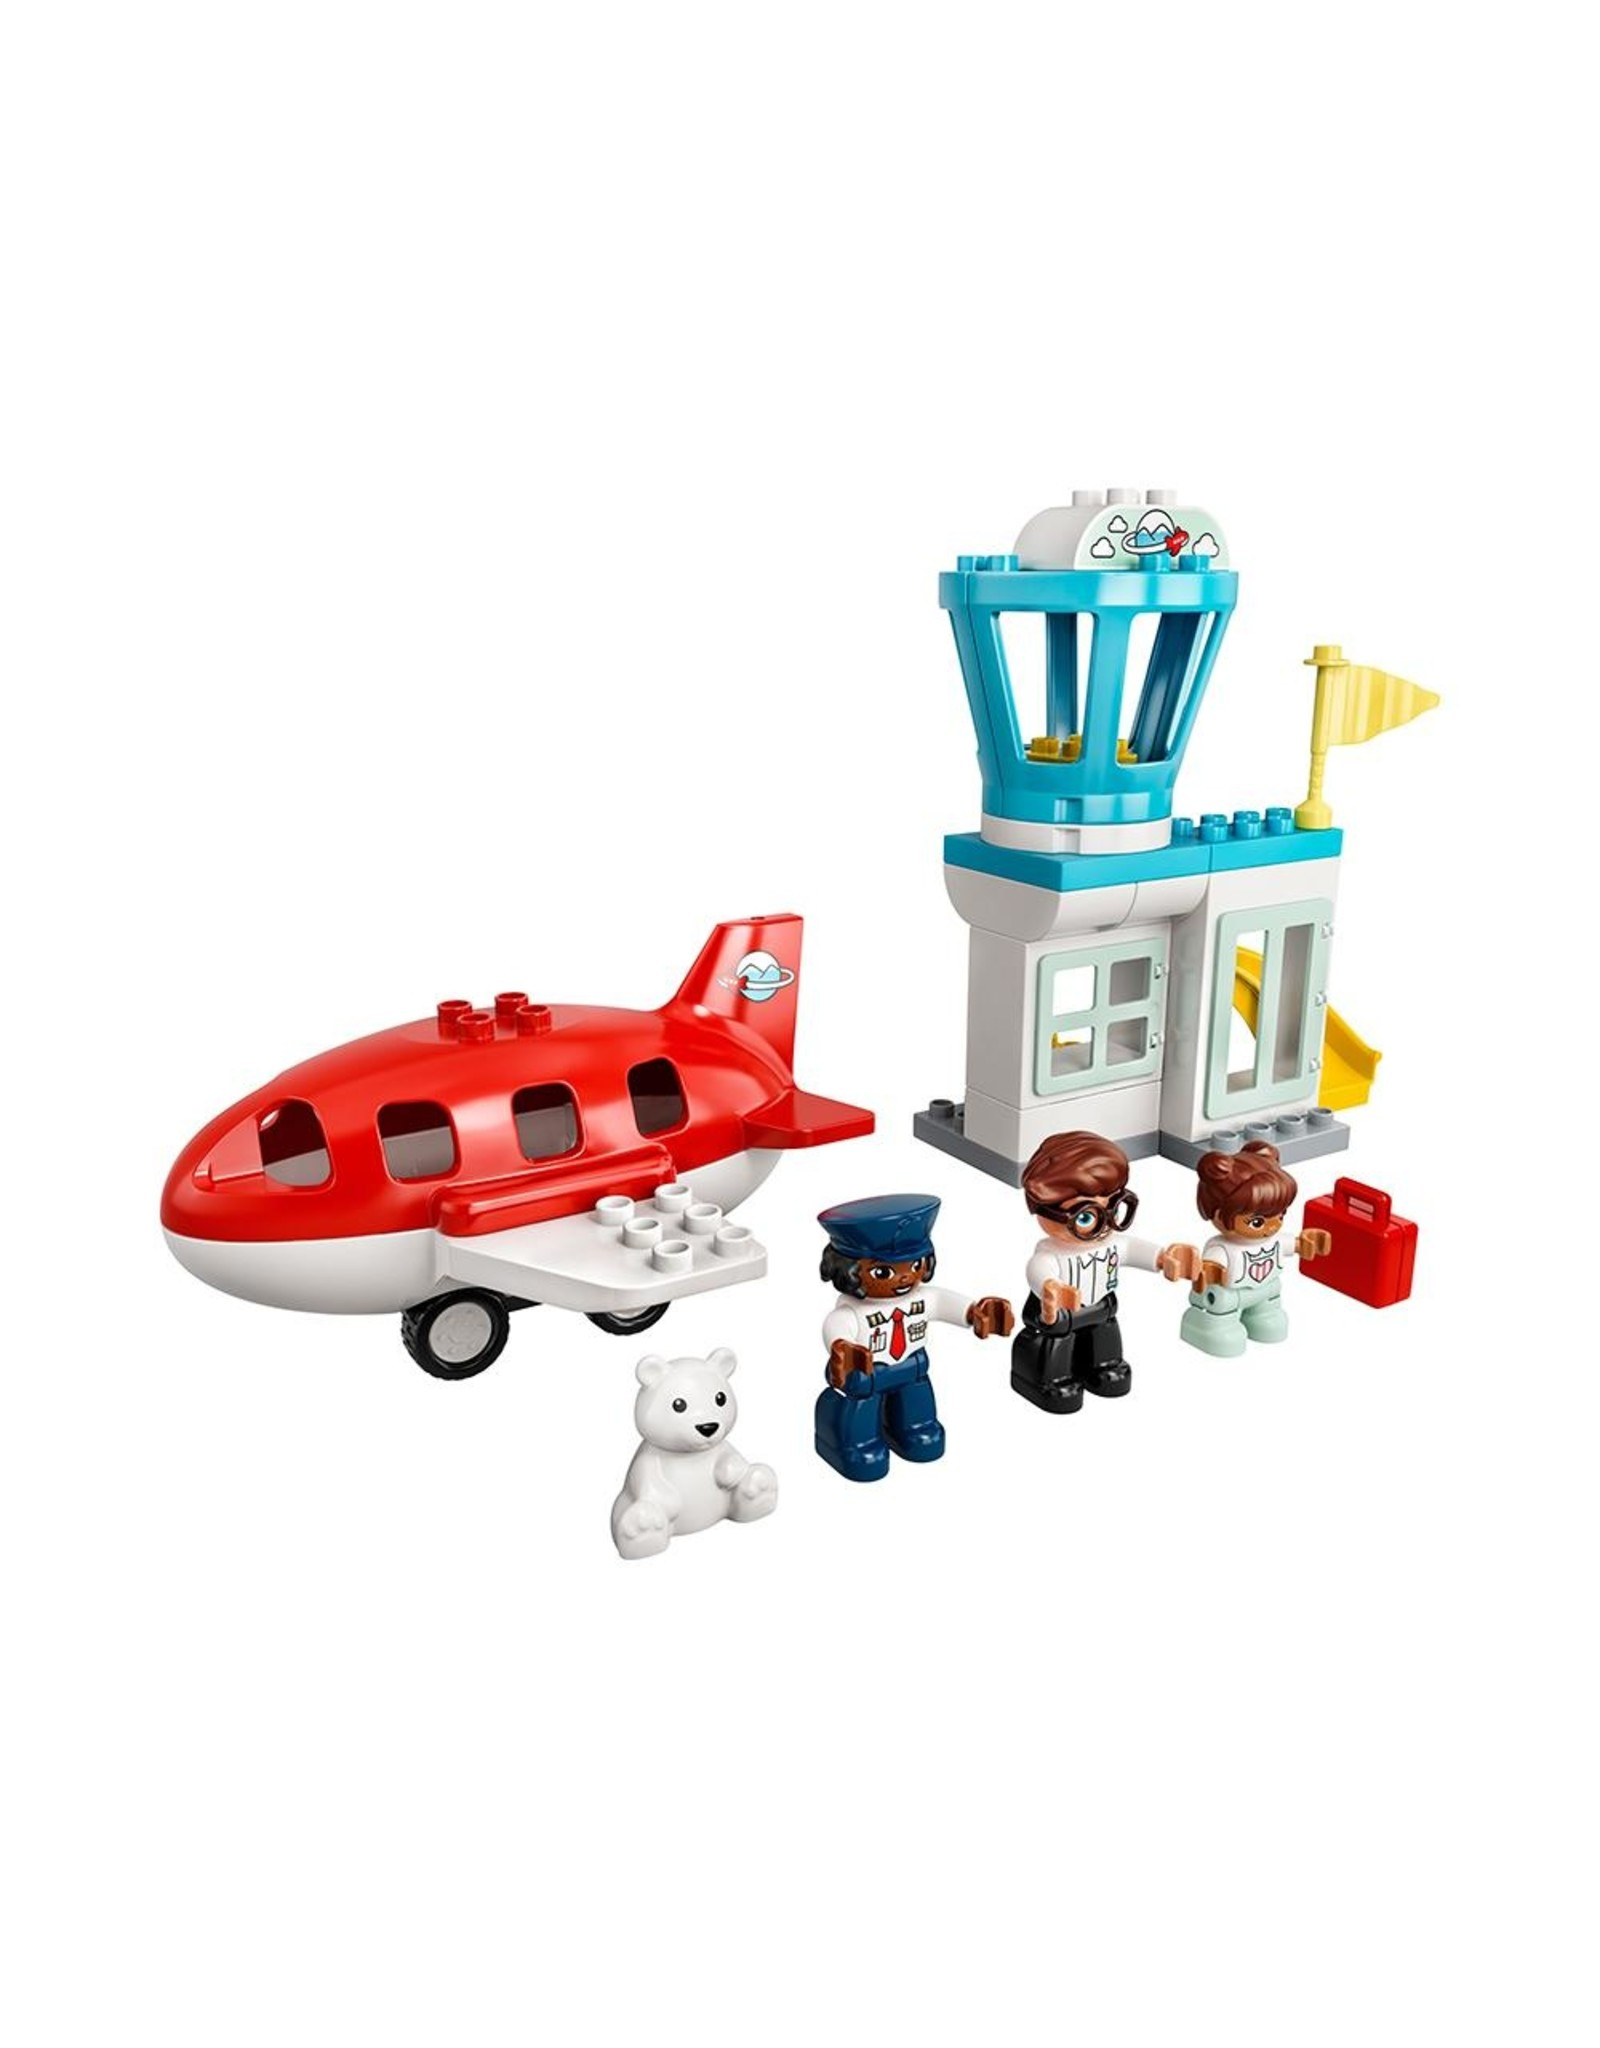 LEGO Duplo Town 10961 Airplane & Airport